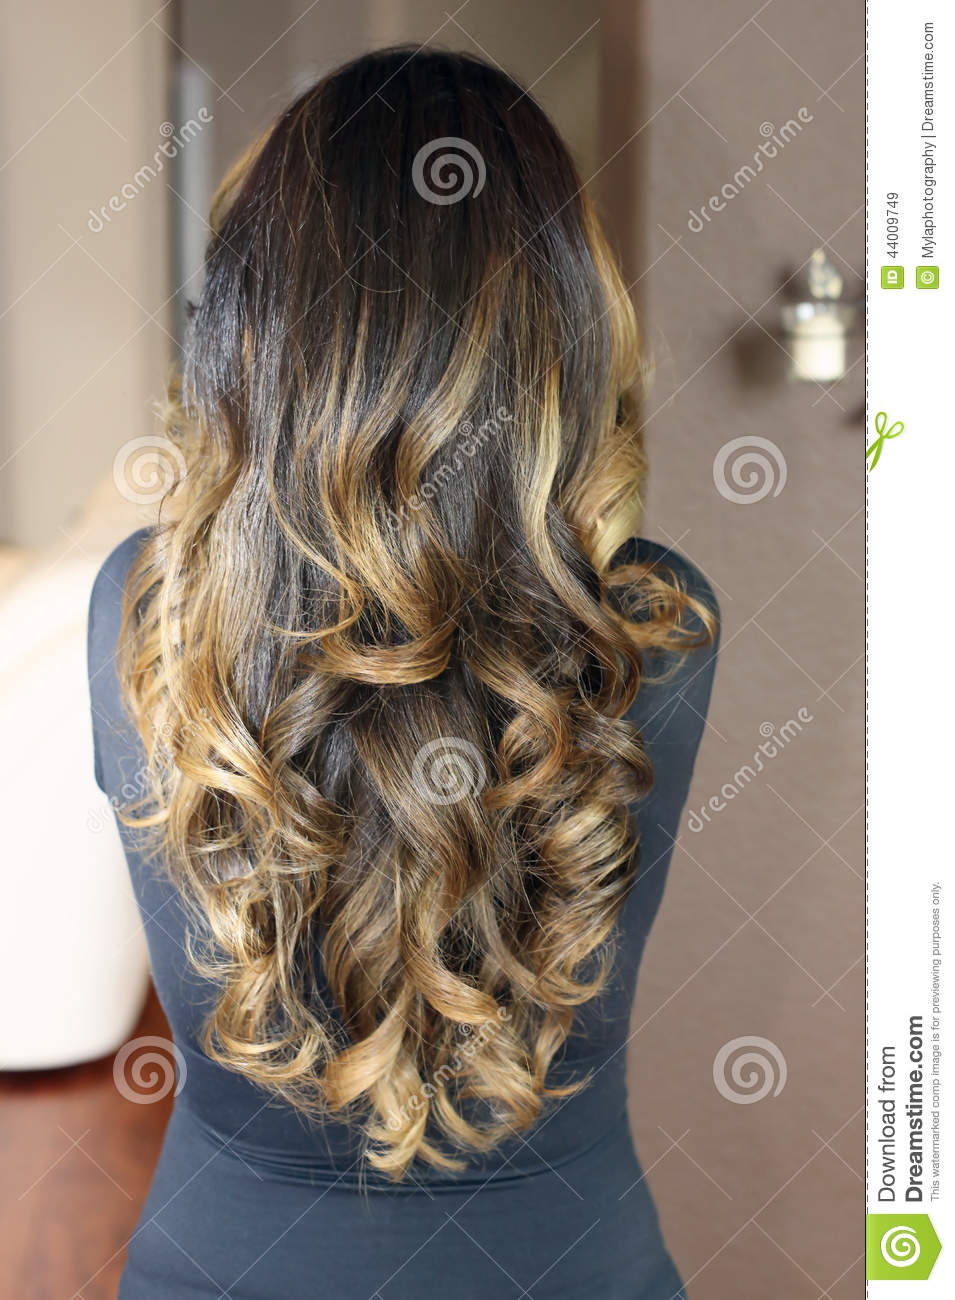 Hair Model Stock Image Image Of Brown Salon Curly